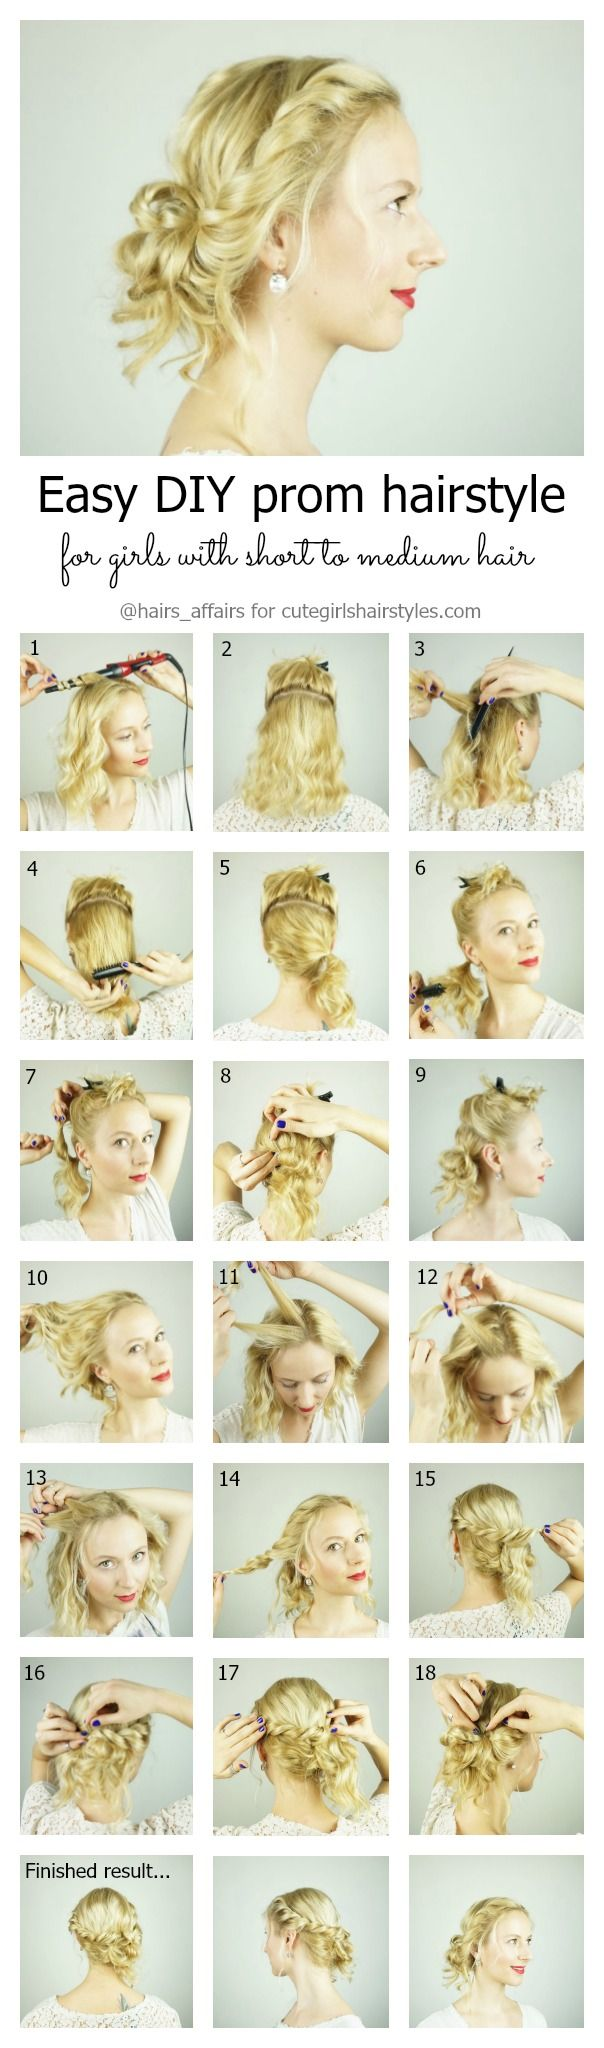 Easy DIY prom hairstyle for girls with short to medium hair with layers | Simple prom hair, Prom ...